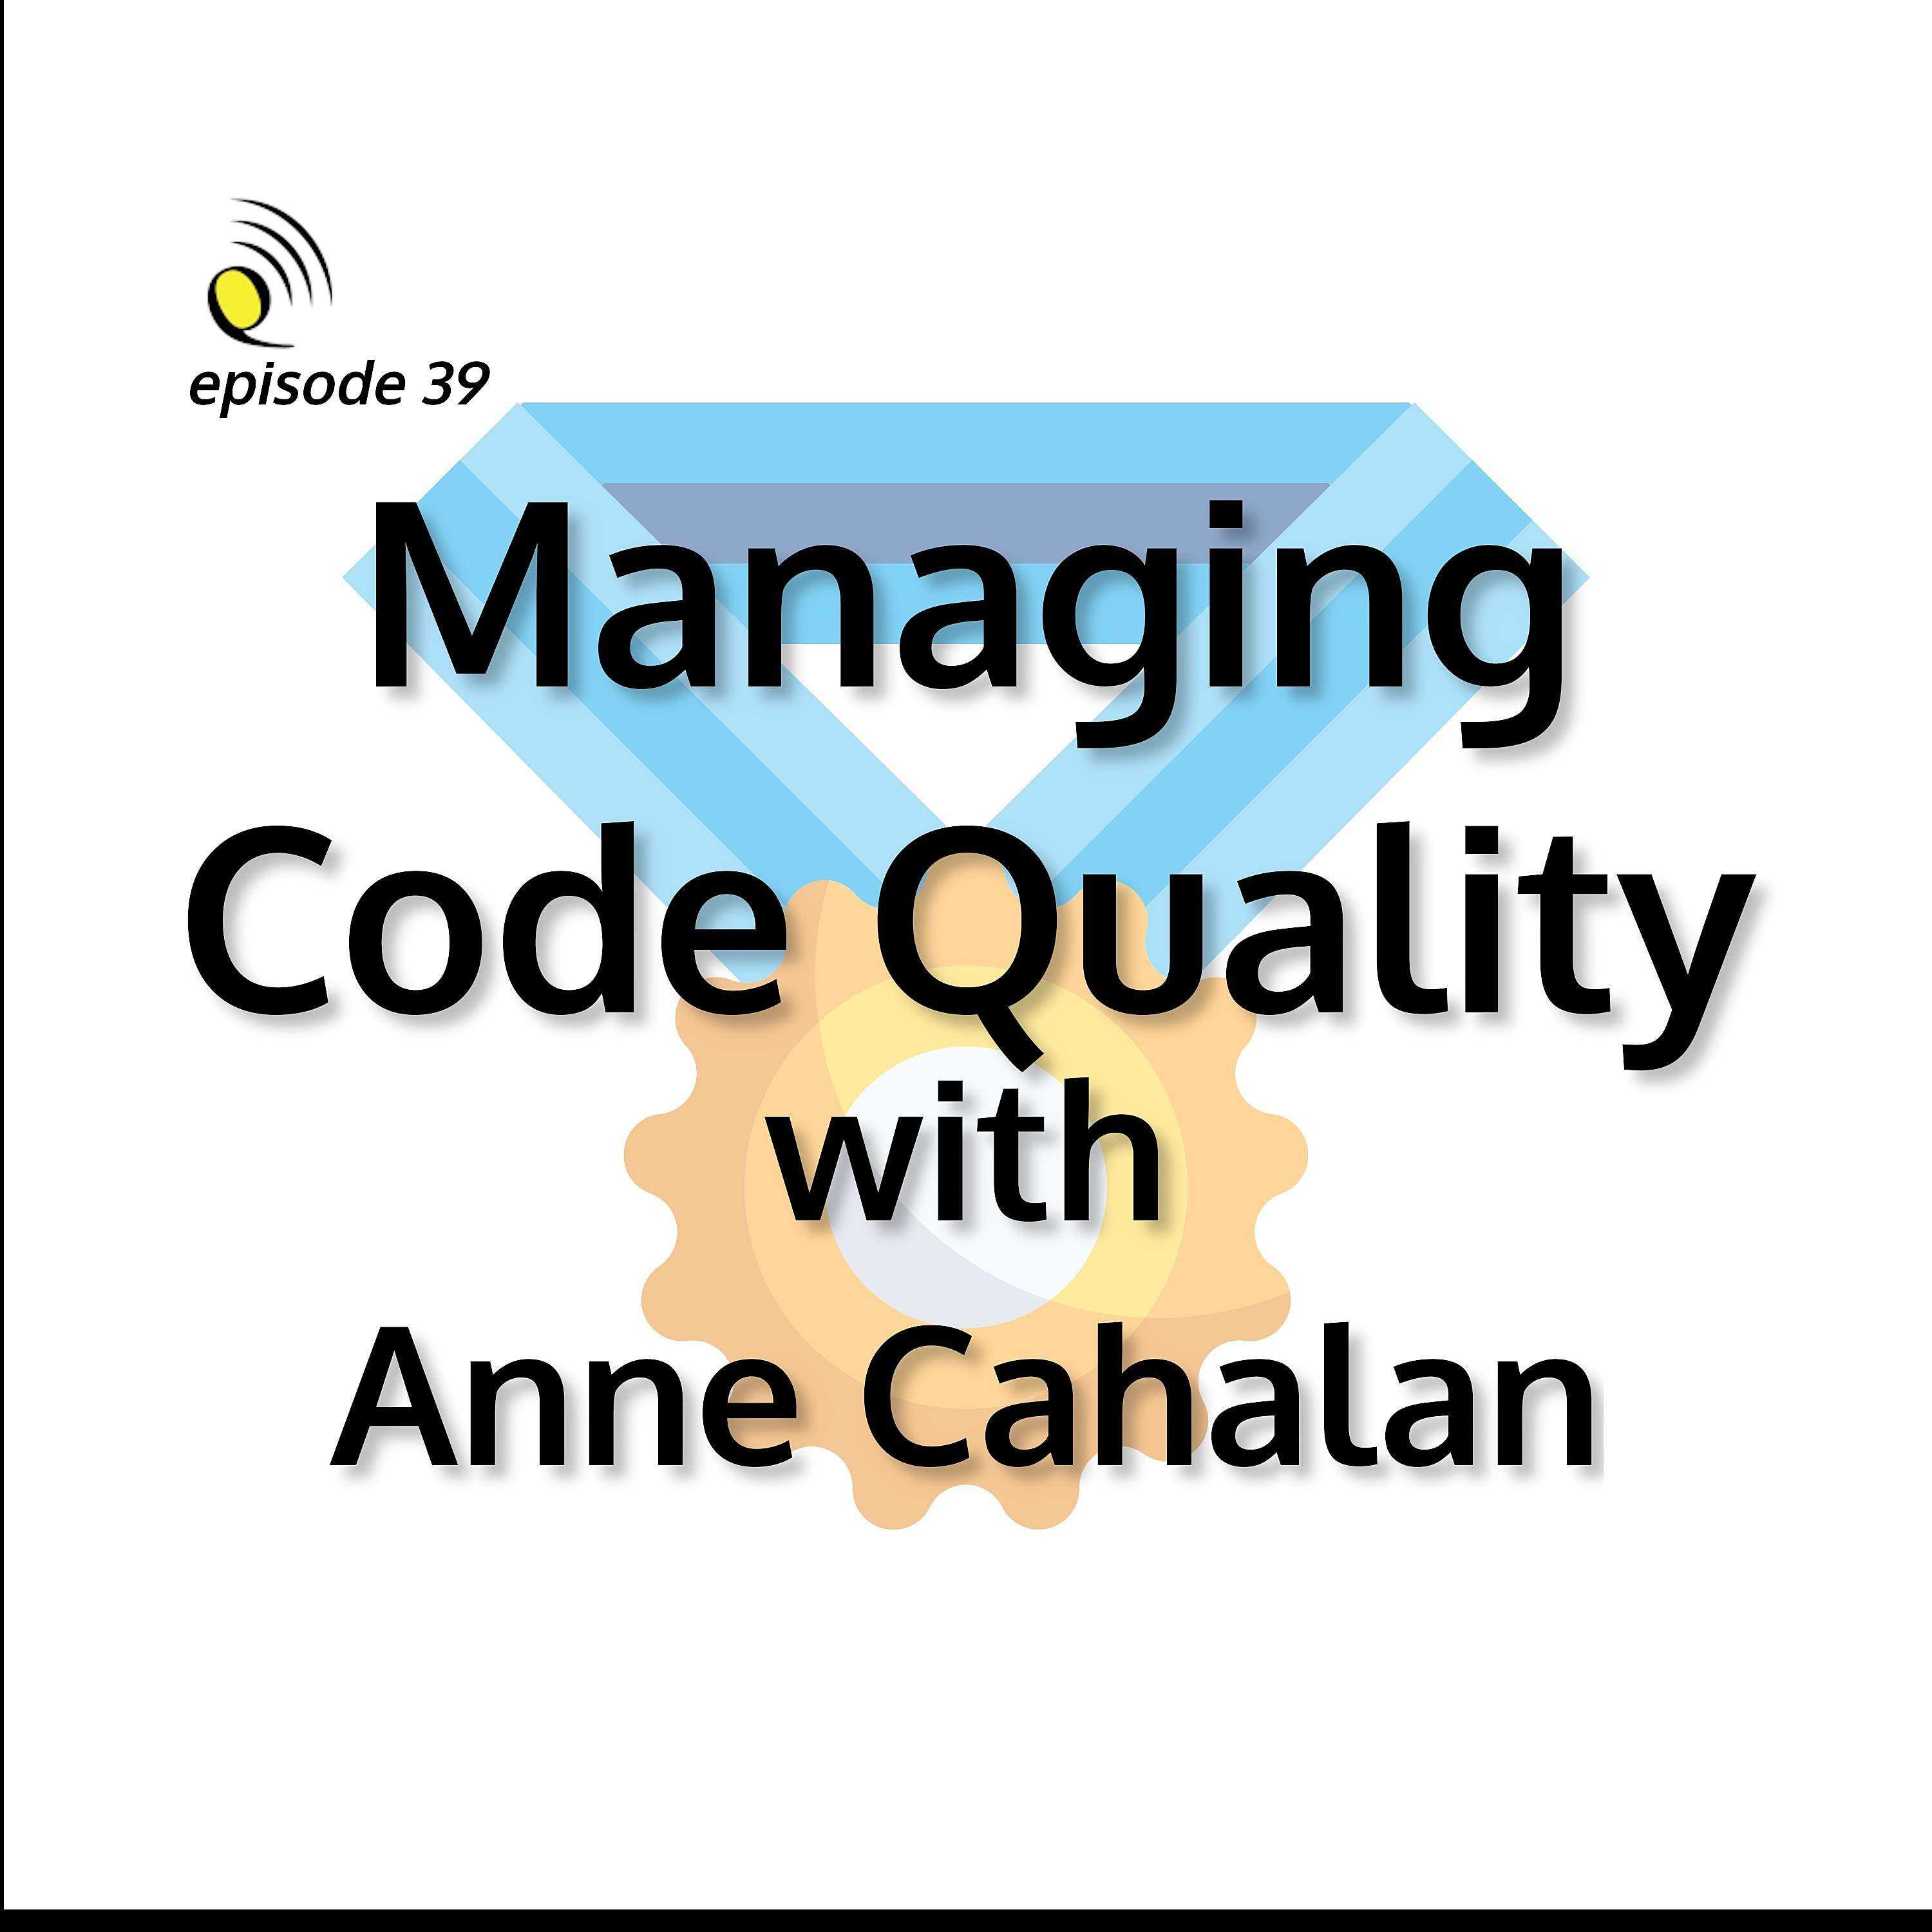 Managing Code Quality with Anne Cahalan